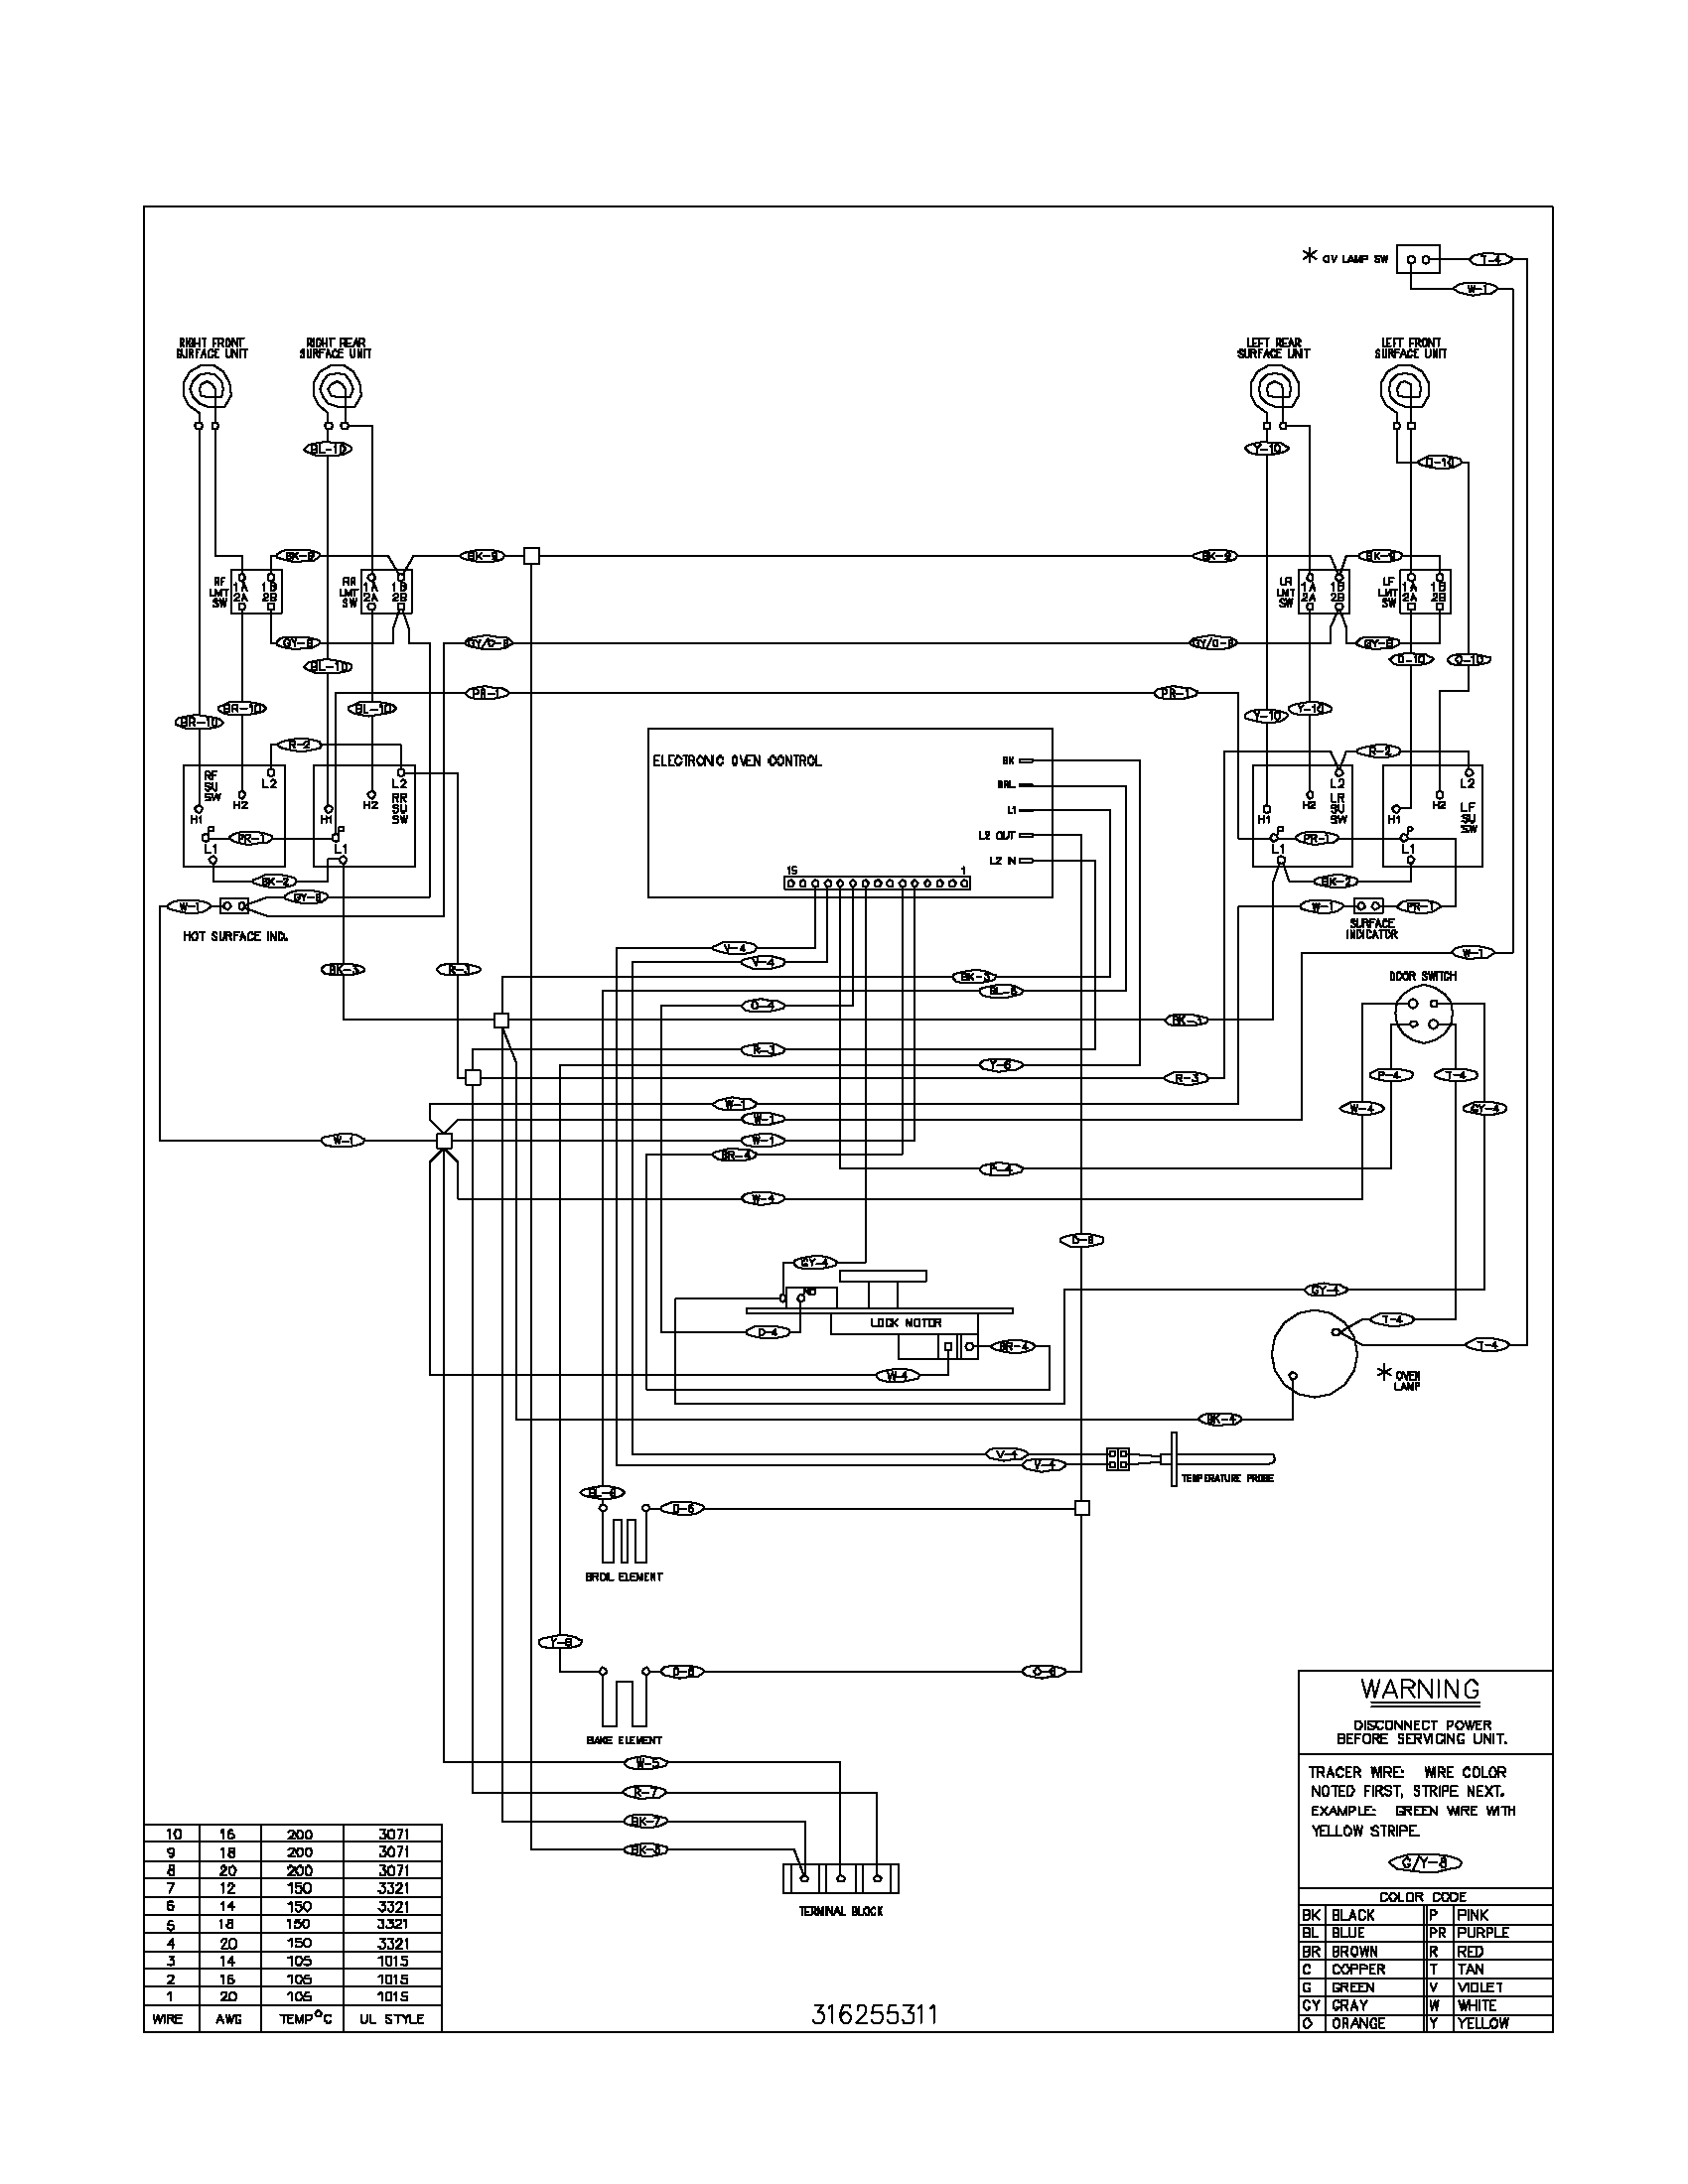 electrical wiring diagrams for dummies with Electrolux Range Wiring Diagram on Wiringdiagrams furthermore Office Light Switch further House Electrical Wiring furthermore P0710 further Electrolux Range Wiring Diagram.